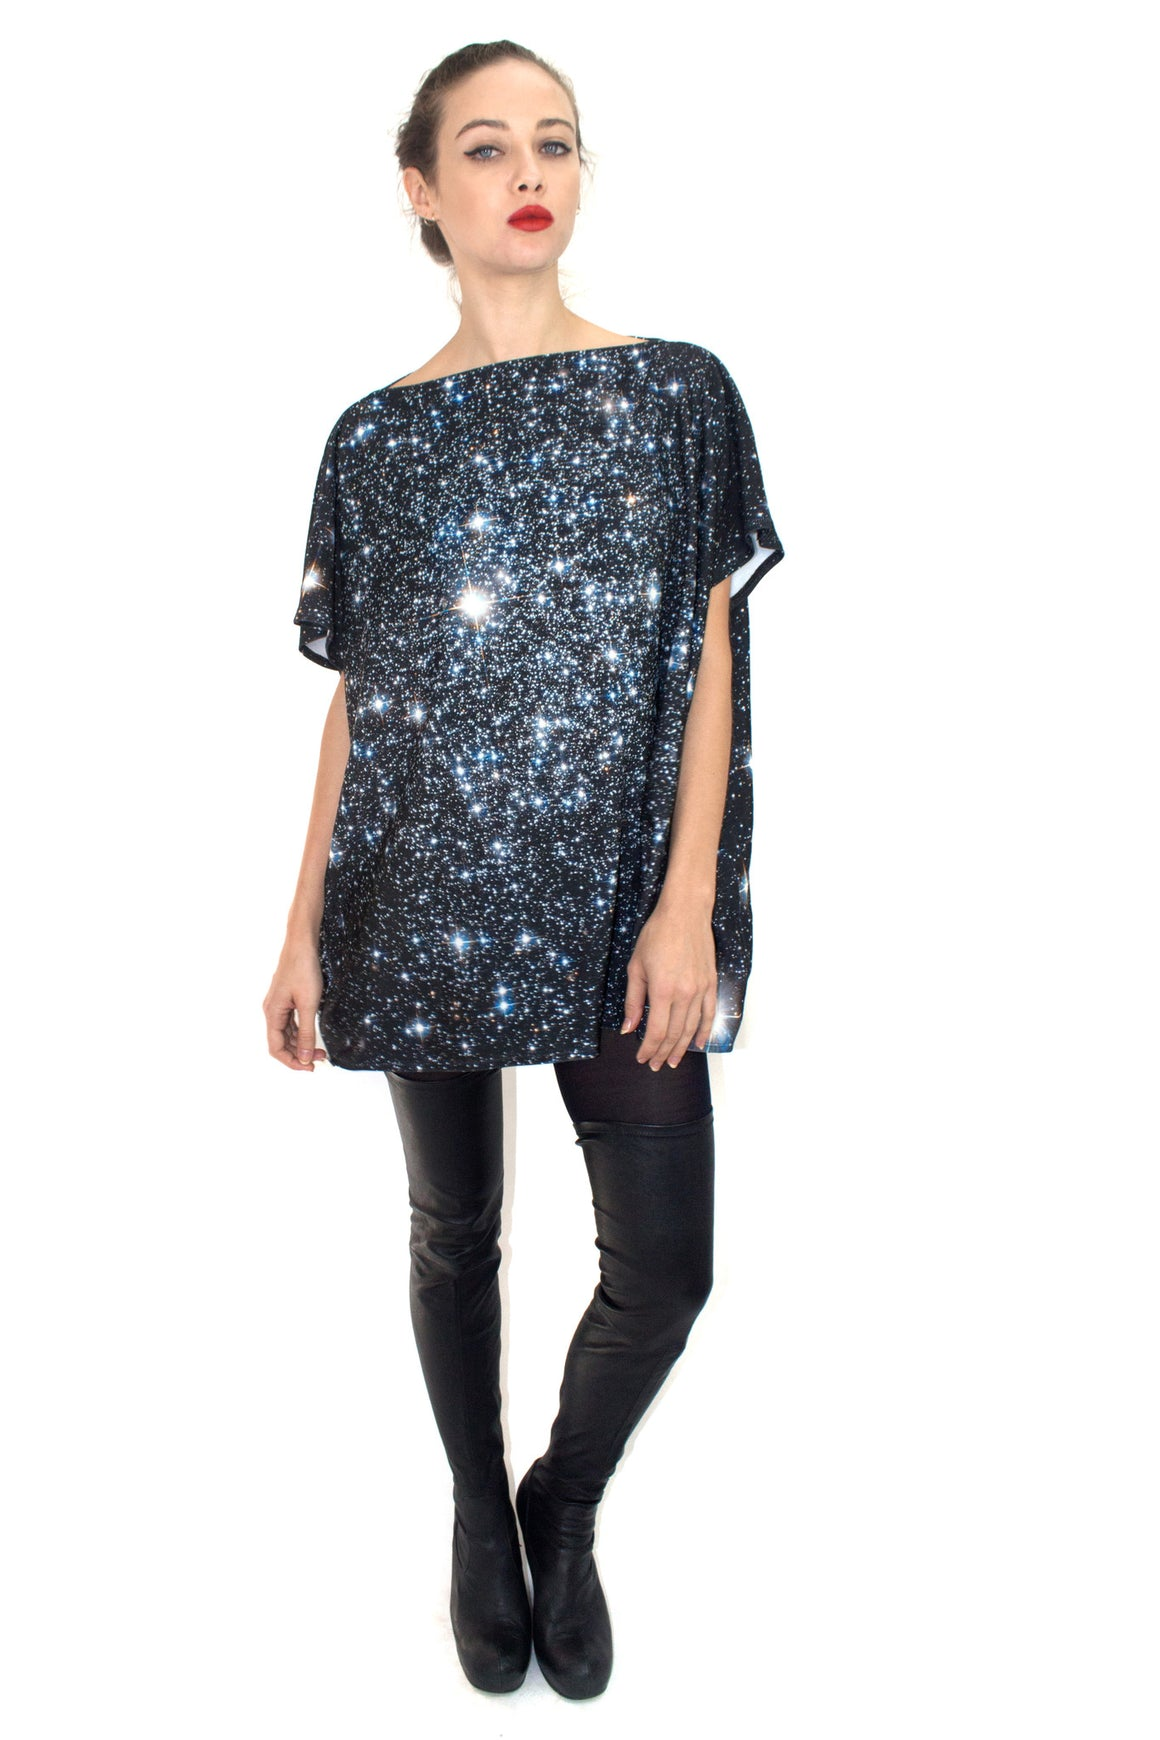 Star Cluster Jersey Top, Shadowplay New York, Galaxy Print Clothing